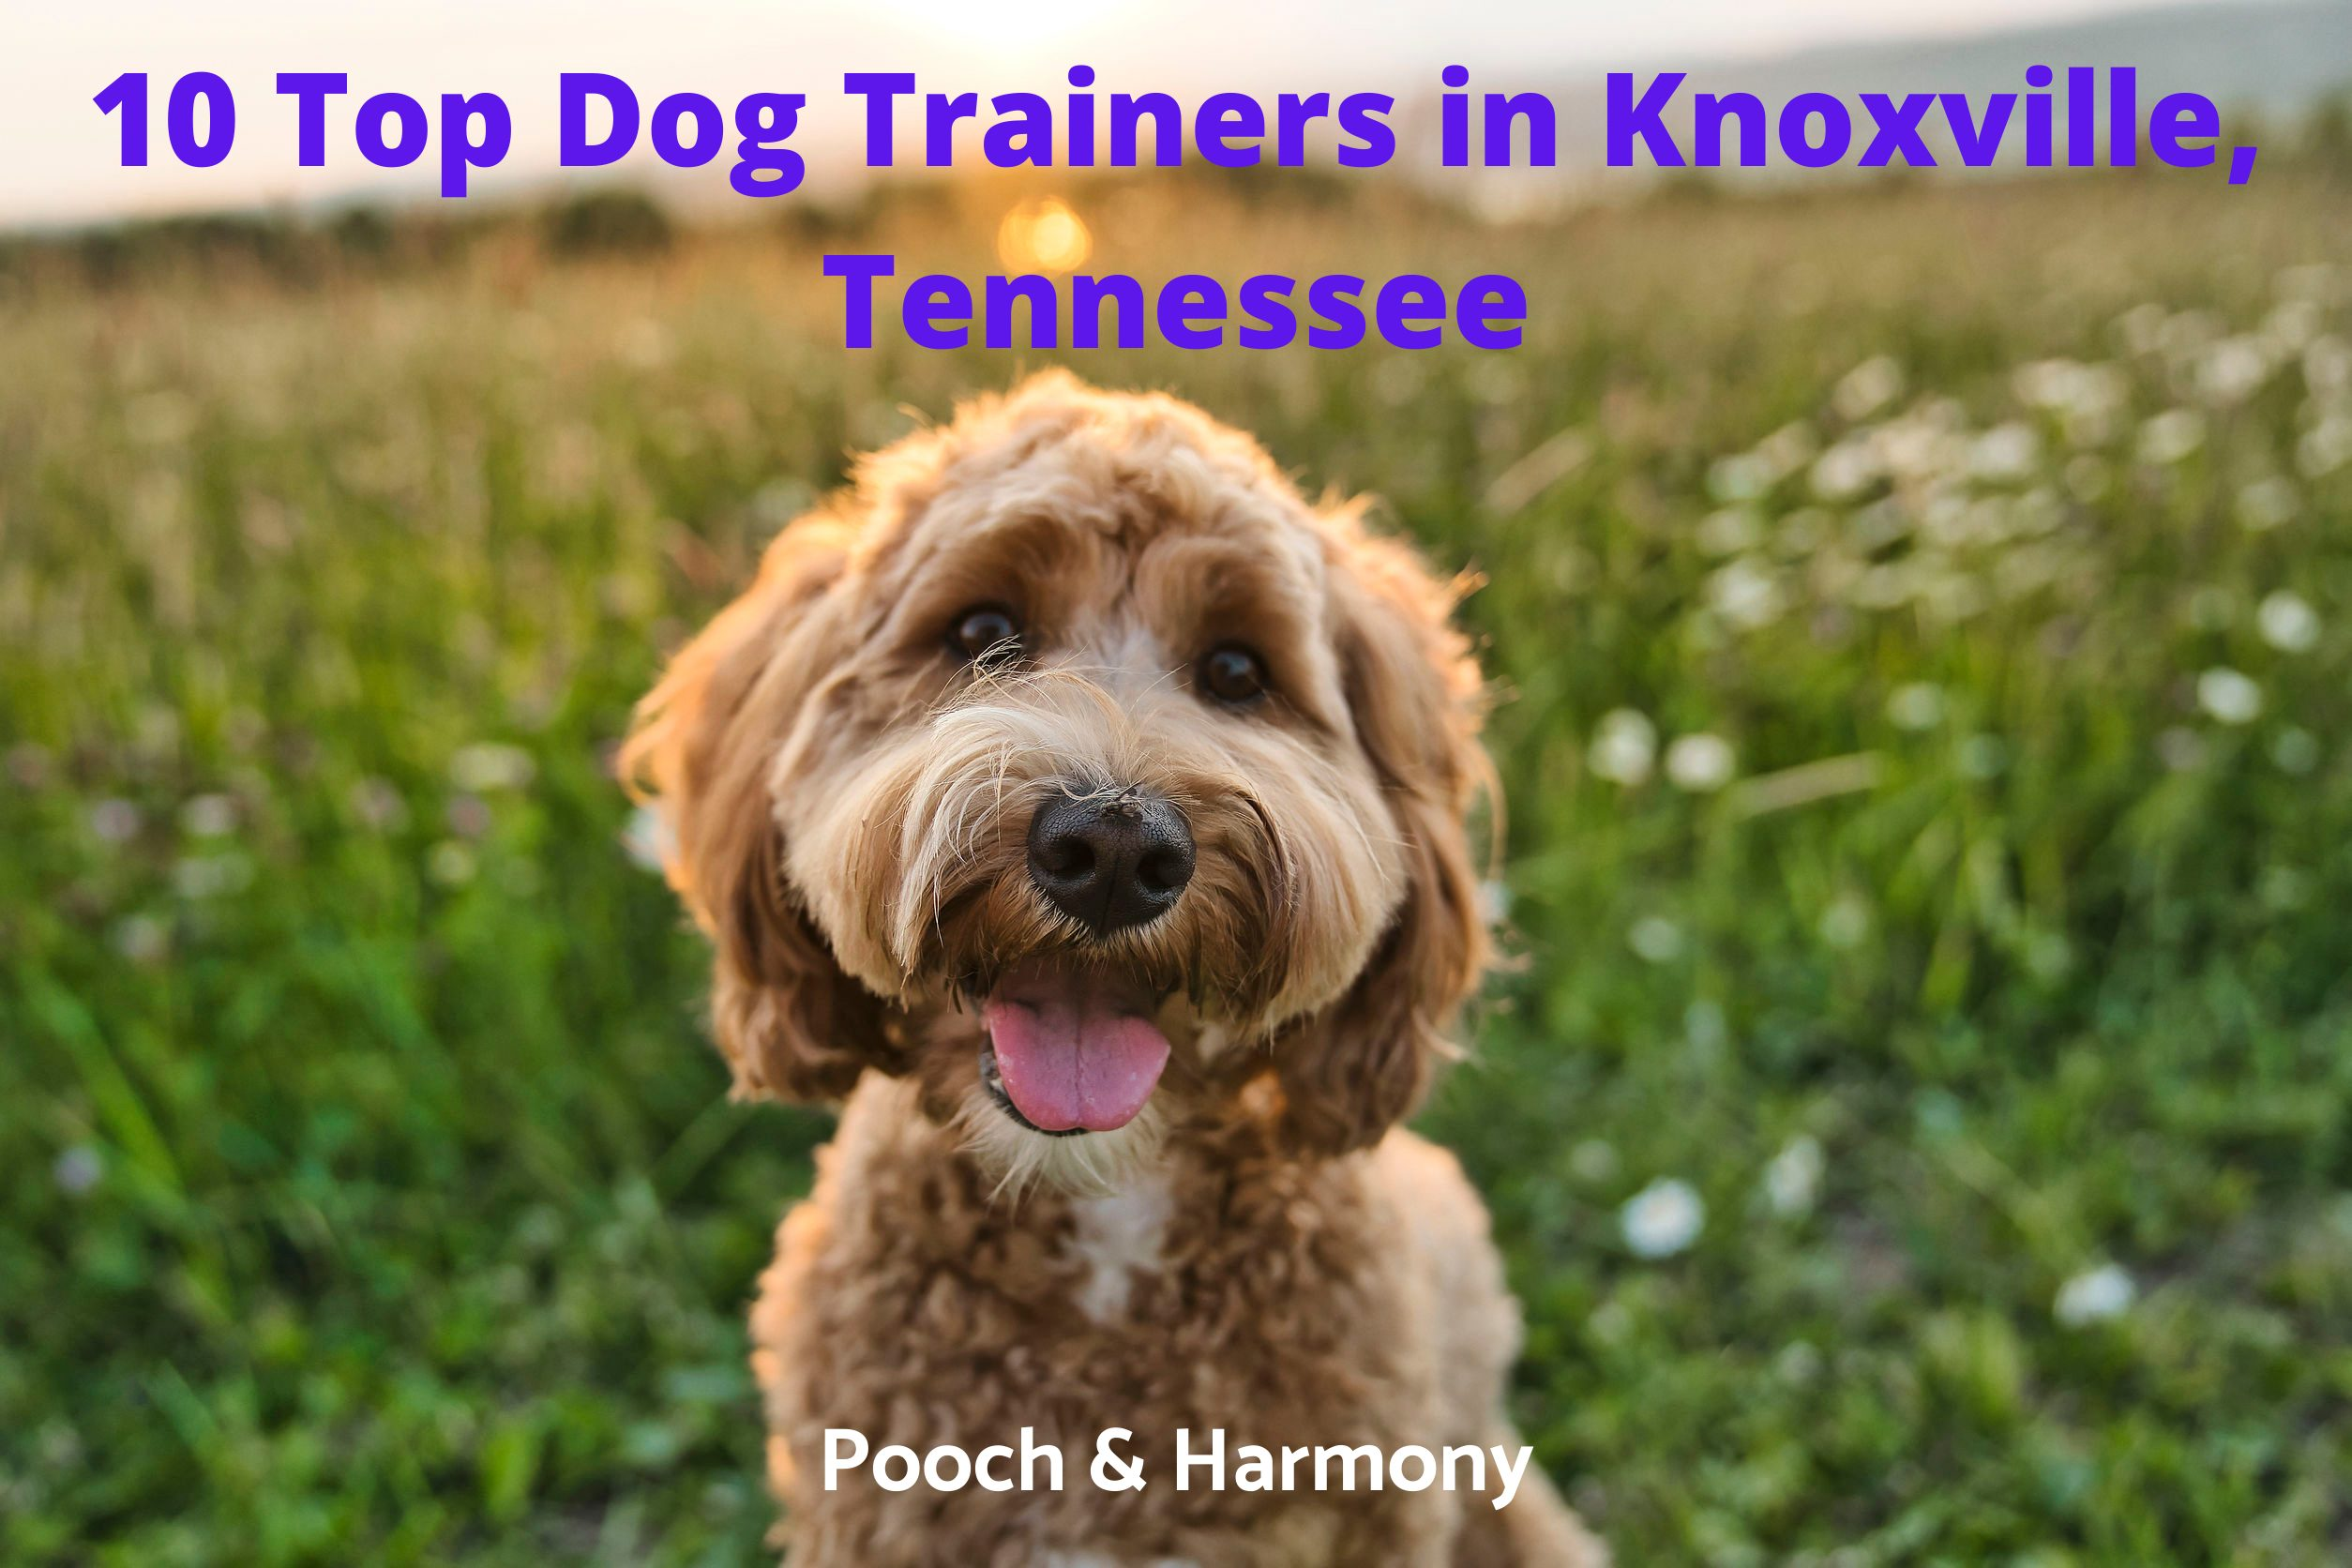 Dog Trainers in Knoxville, Tennessee